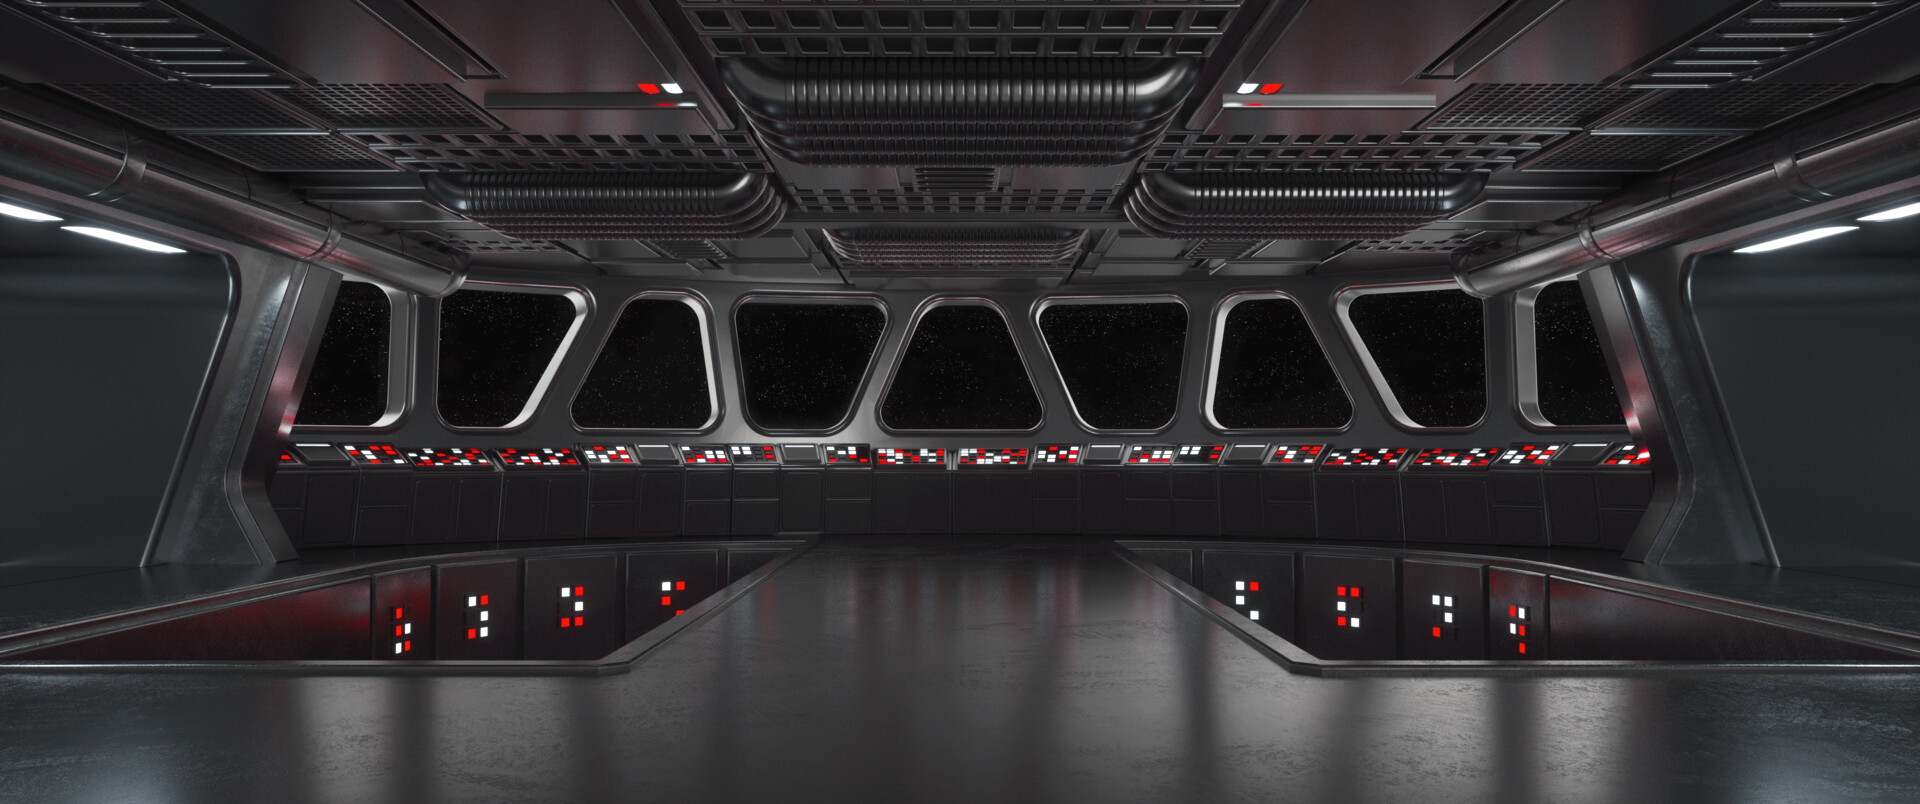 ArtStation - Star Wars Star Destroyer Bridge, Jonas M.